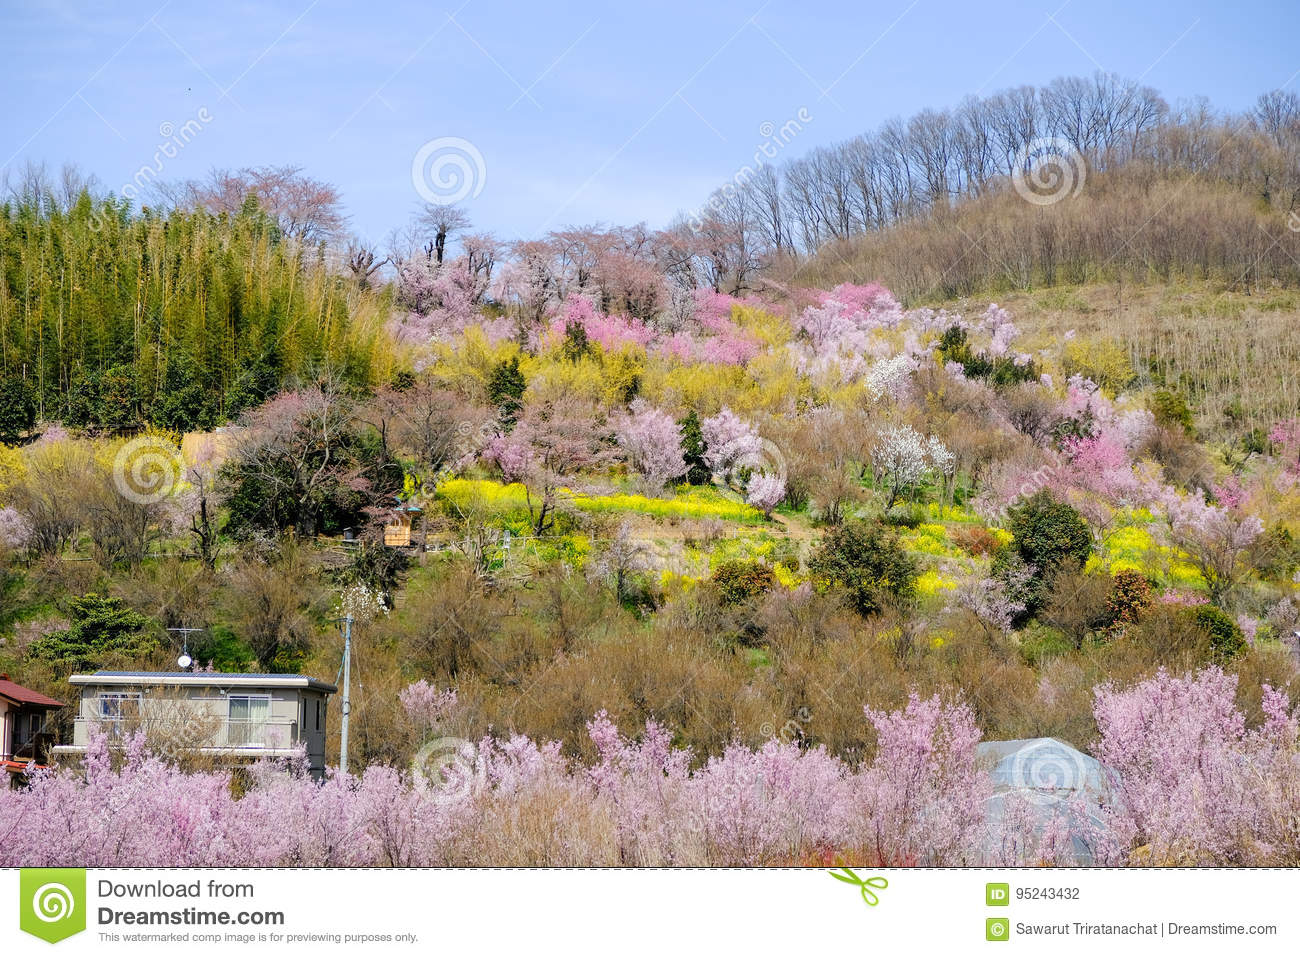 Multicolor flowering trees covering hillside ,Hanamiyama Park,Fukushima,Tohoku,Japan.